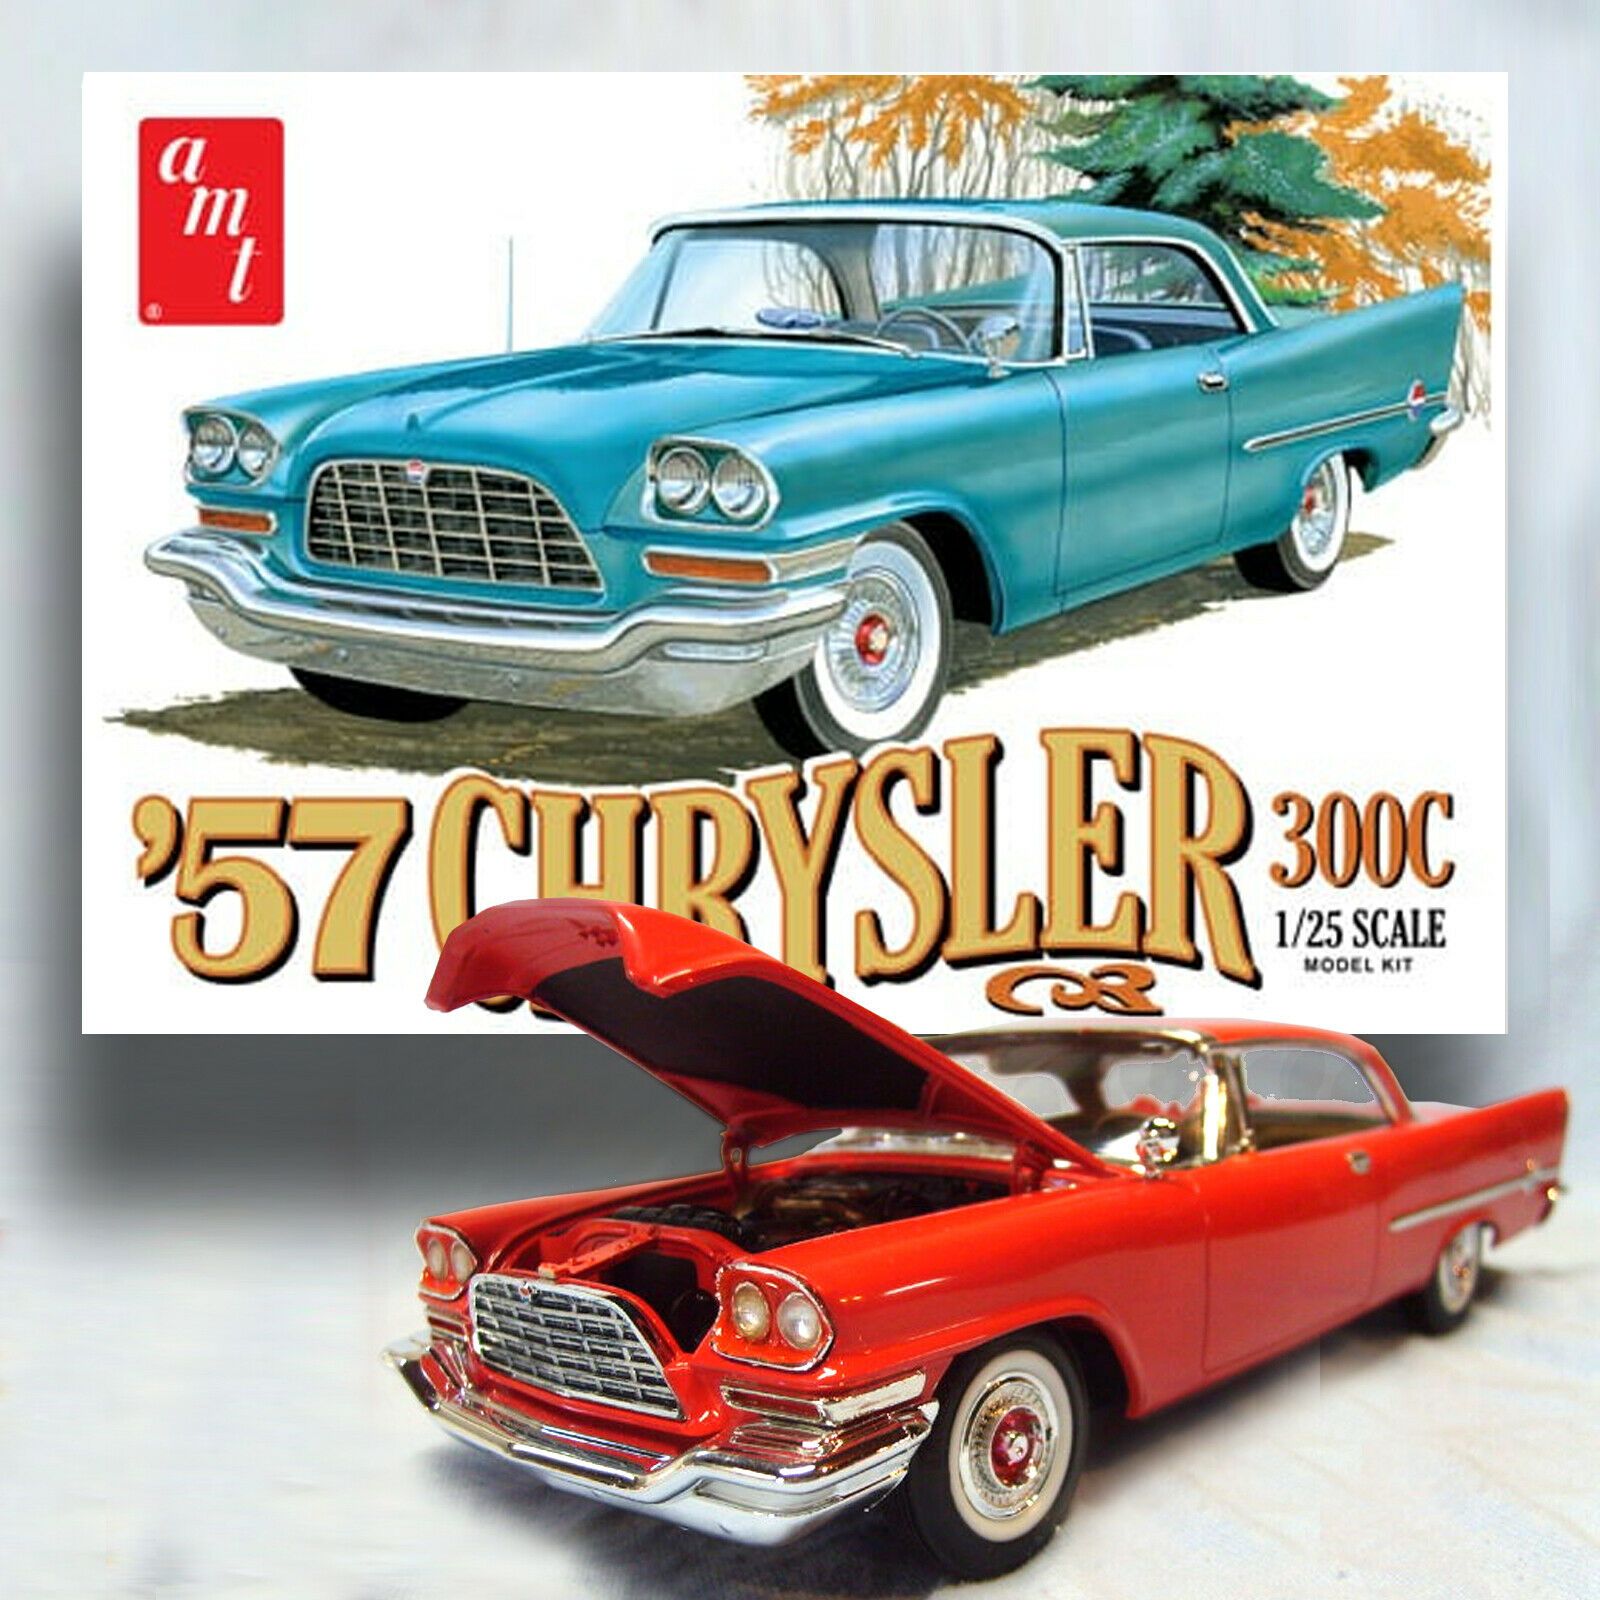 AMT 1 25 '57 CHRYSLER 300C PRECISION MODEL KIT 1100